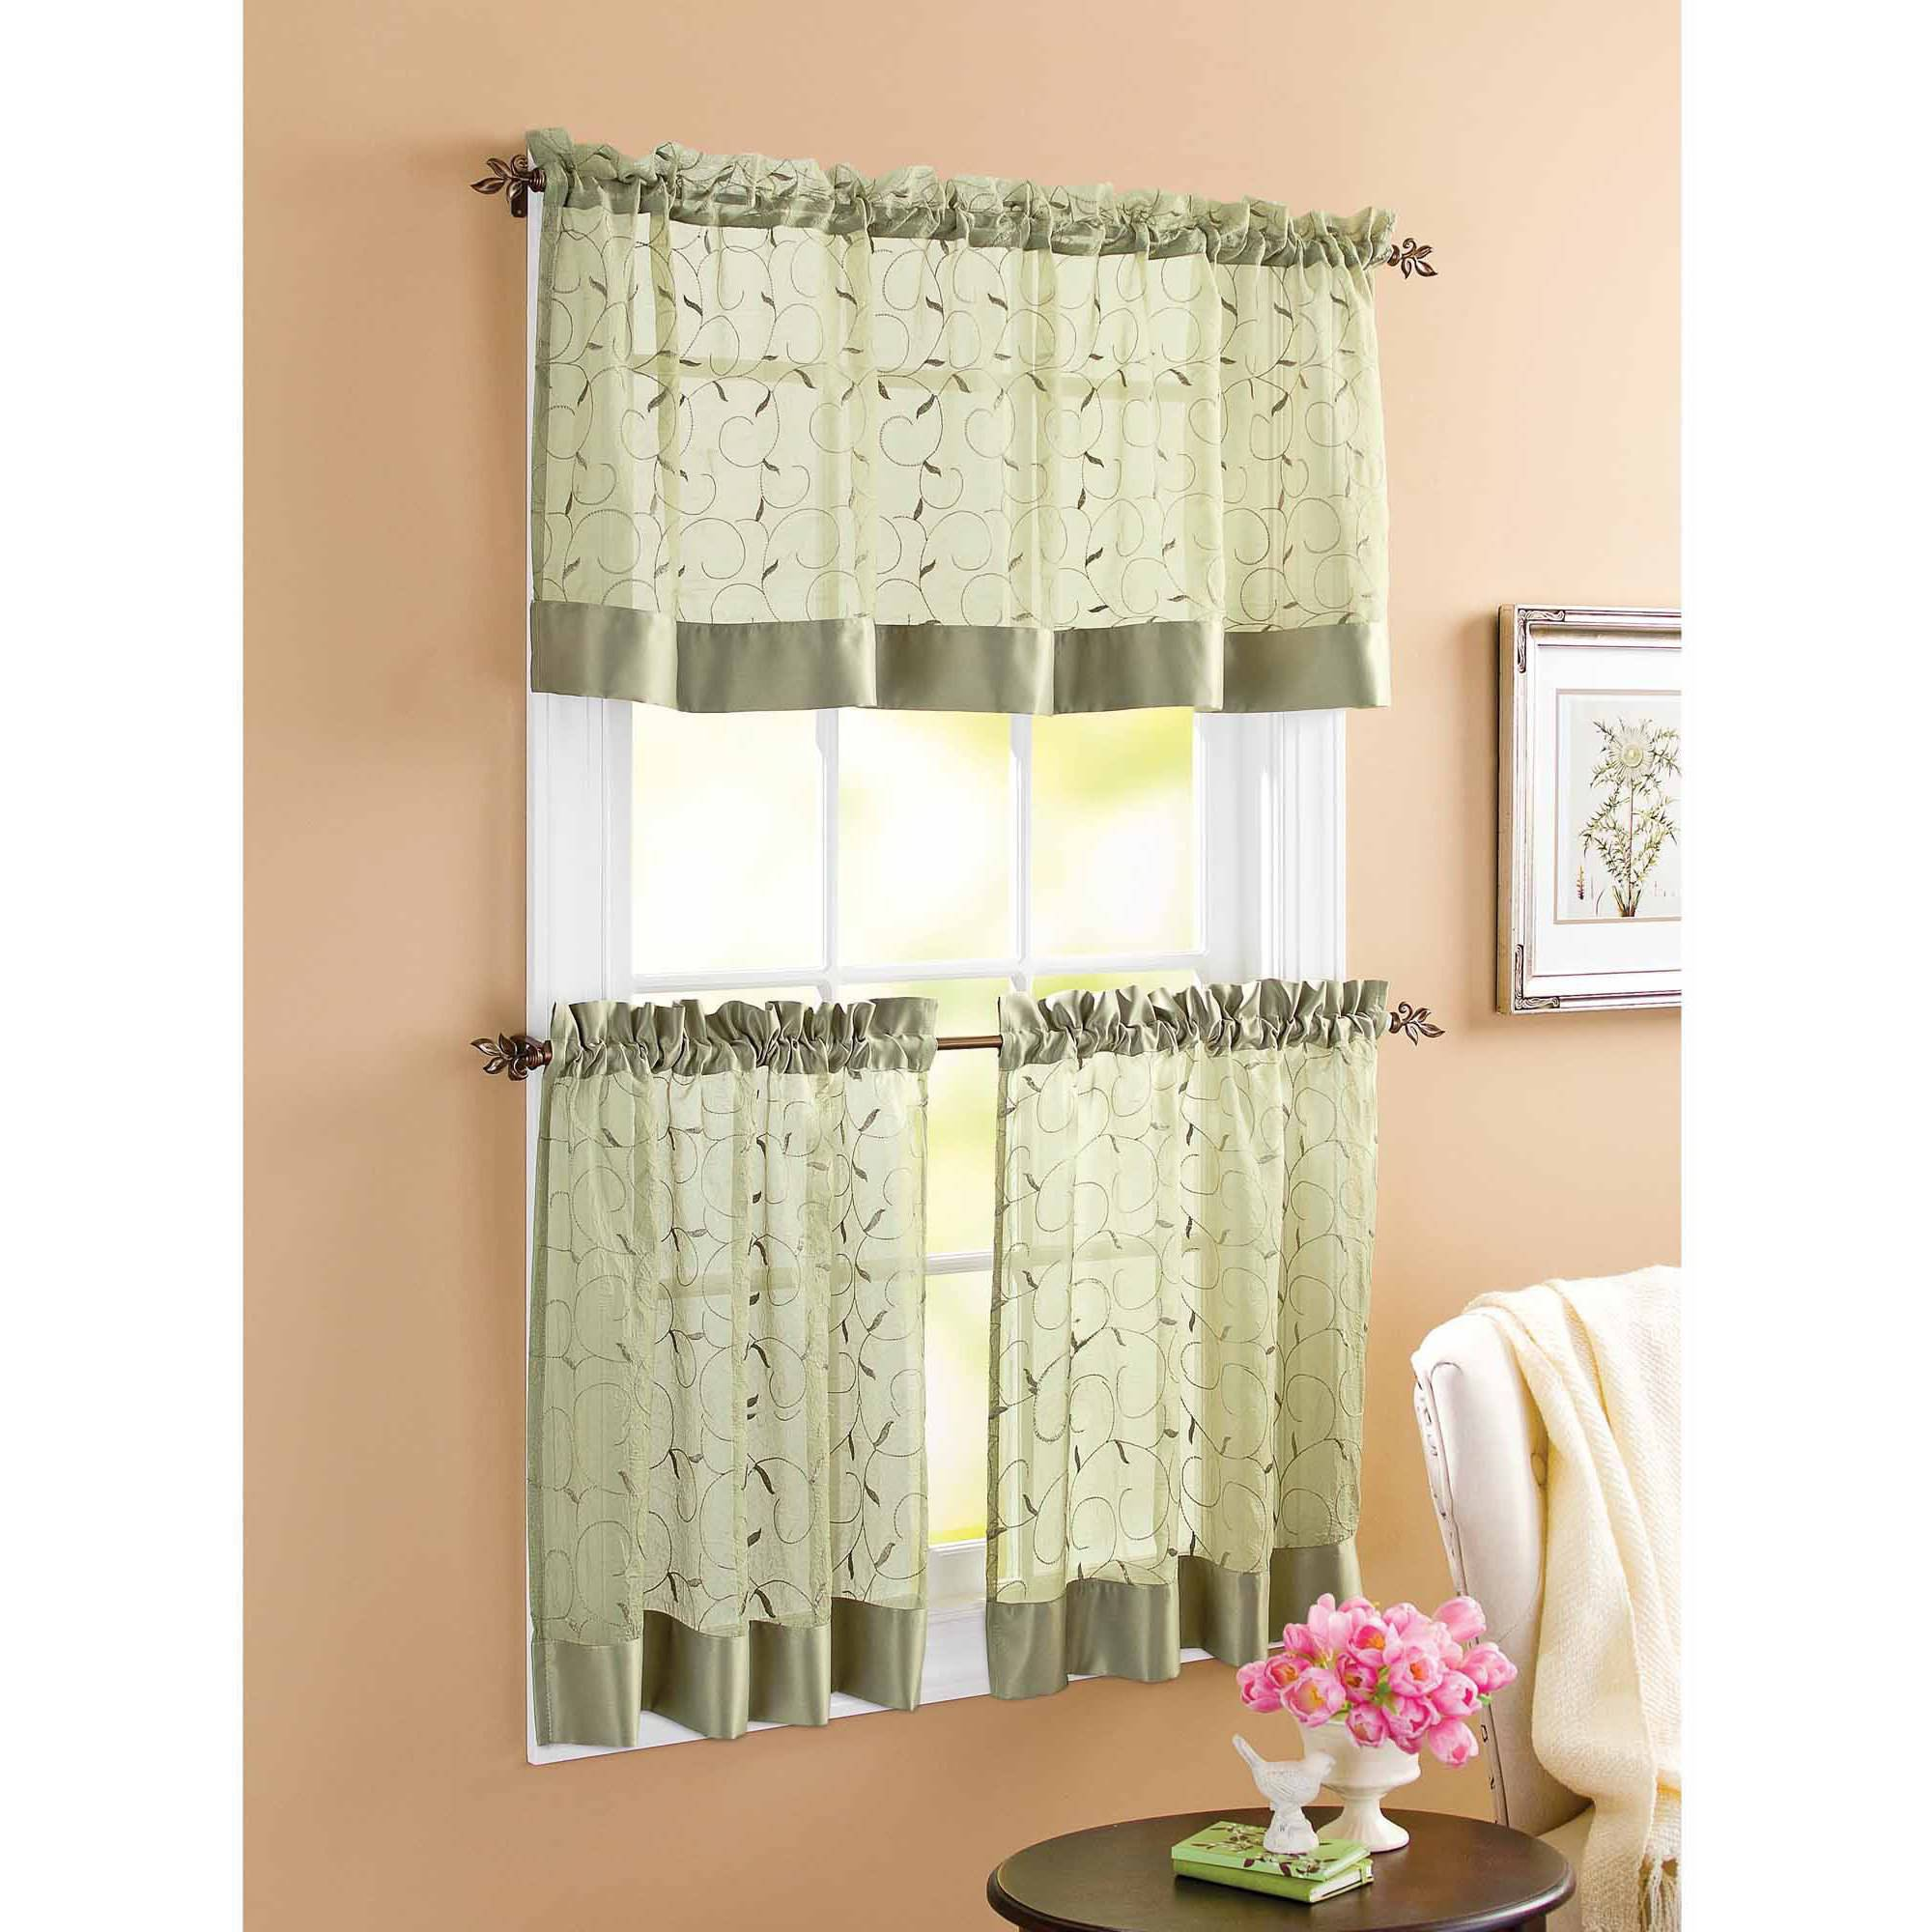 Superior Better Homes And Gardens Sage Linen Leaf 3 Piece Kitchen Curtains, Curtain  Panels And Part 24